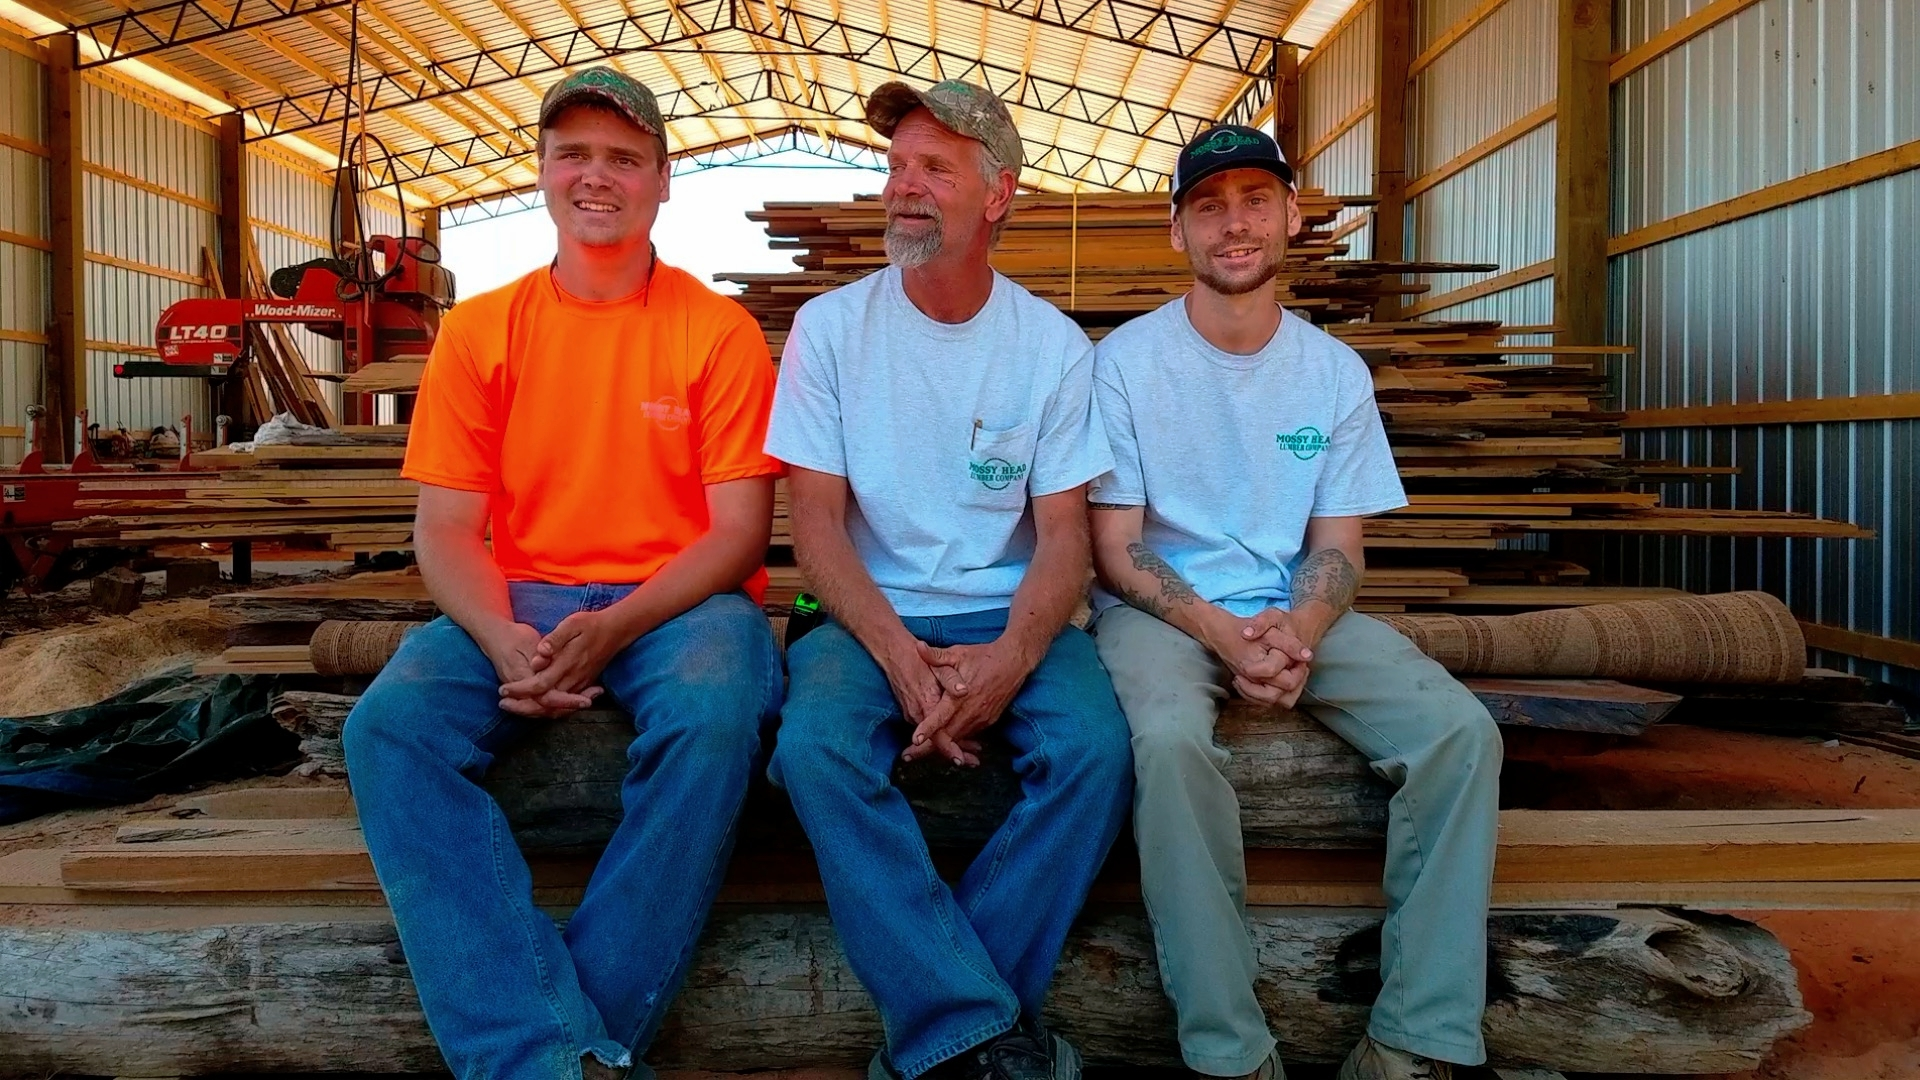 Rich Mitchell with sons. (L to R - Cory, Rich and Steve)